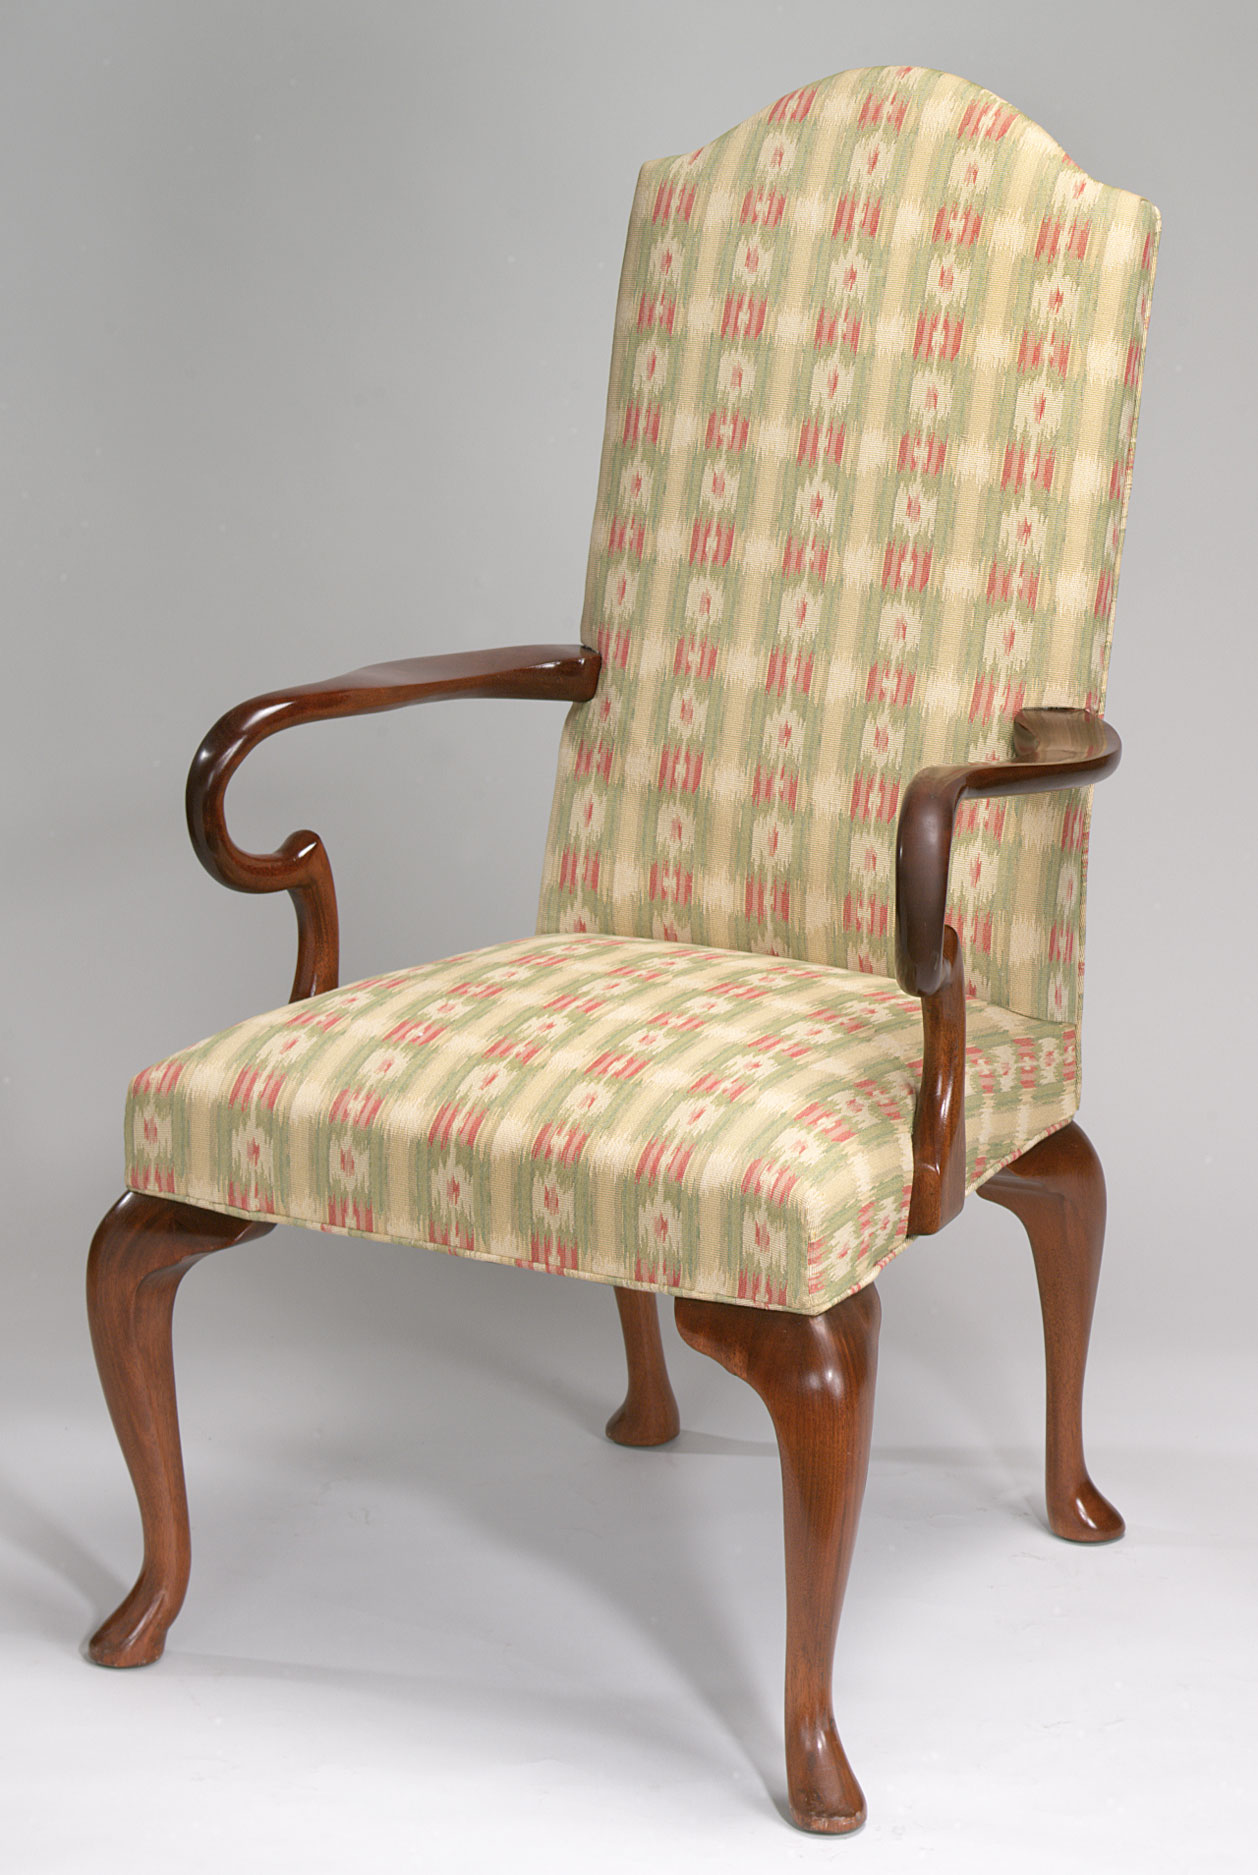 Upholstered Queen Anne Style Chair. & Upholstered Queen Anne Style Chair. | Wood and Hogan